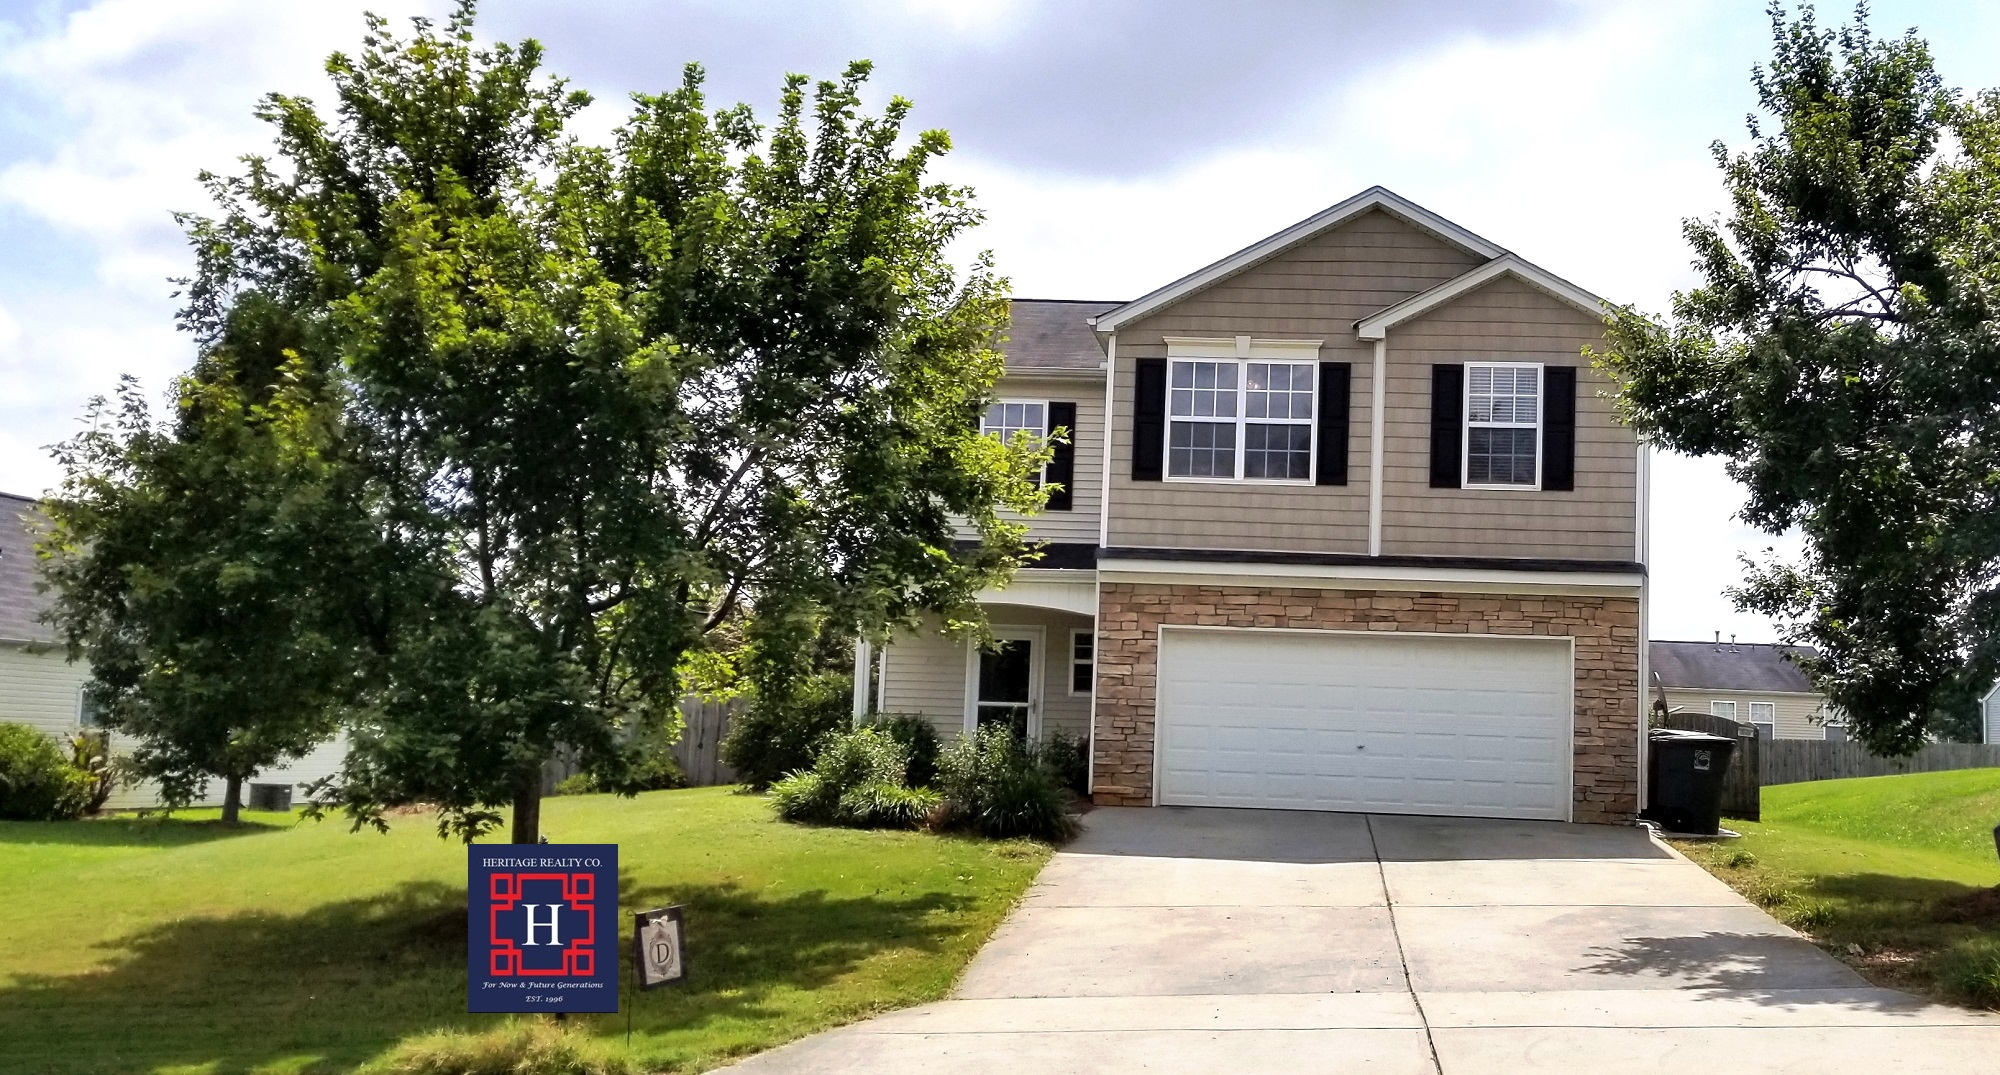 Heritage Realty, For Sale, New Listings, Homes, Homes for sale, Triad